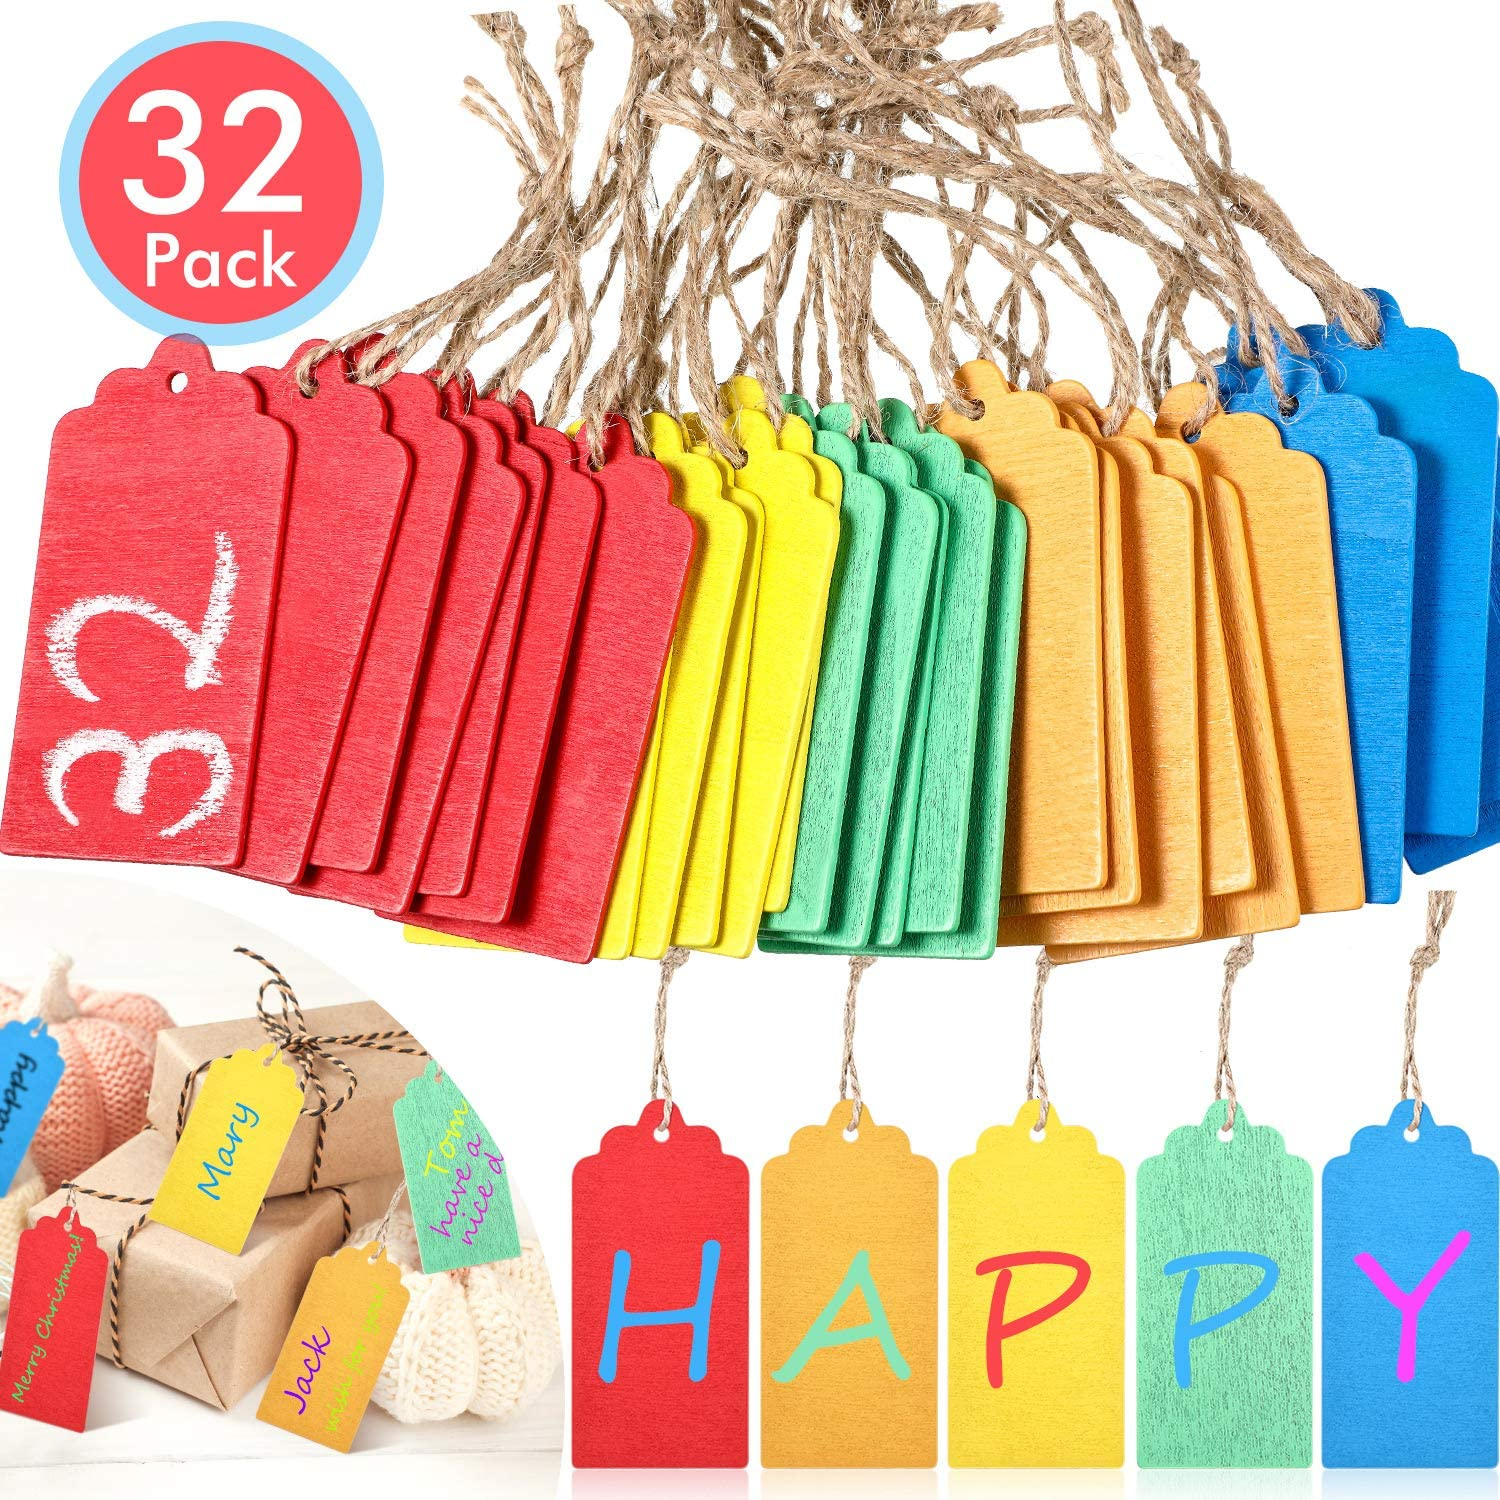 32 Pieces Hanging Chalkboard Tags Mini Chalkboard Signs Double Side Hang Chalkboard Labels Message Tags Chalkboard Labels for Storage Bins, 5 Colors